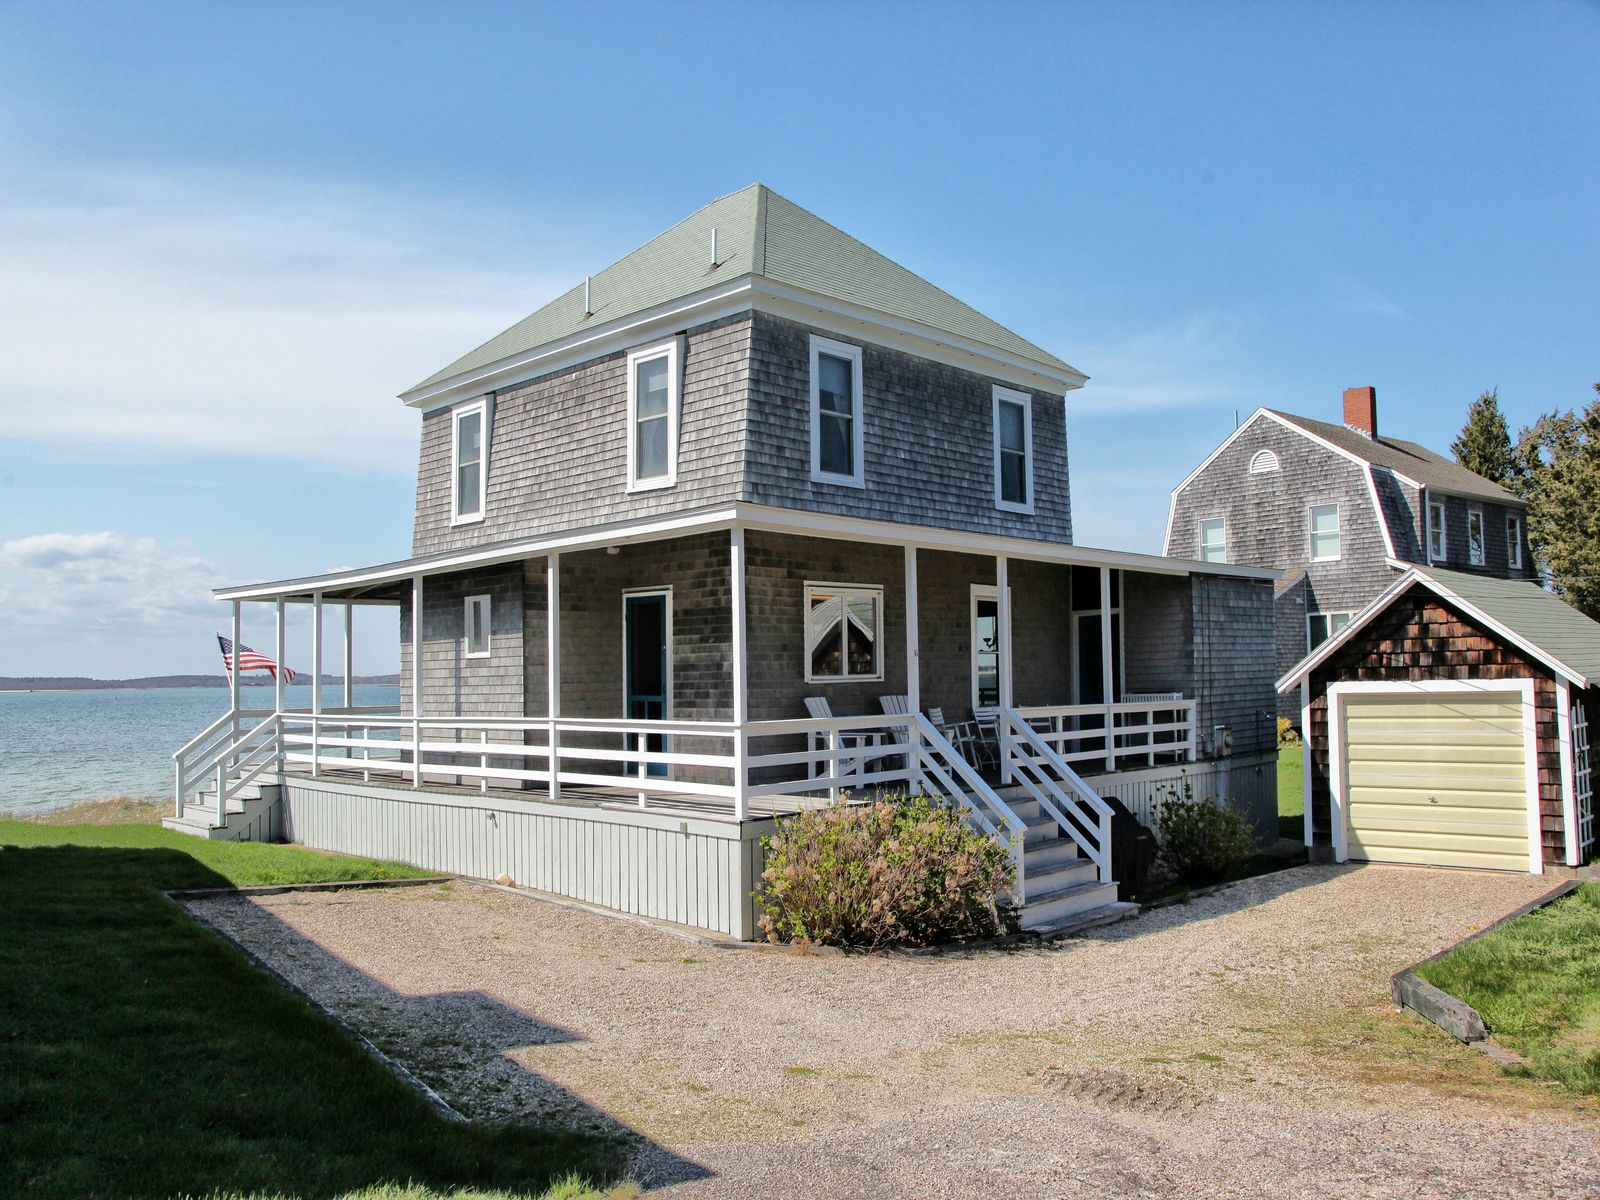 Wenaumet Bluffs Beachfront Summer House, Pocasset MA Single Family Home - Cape Cod Real Estate